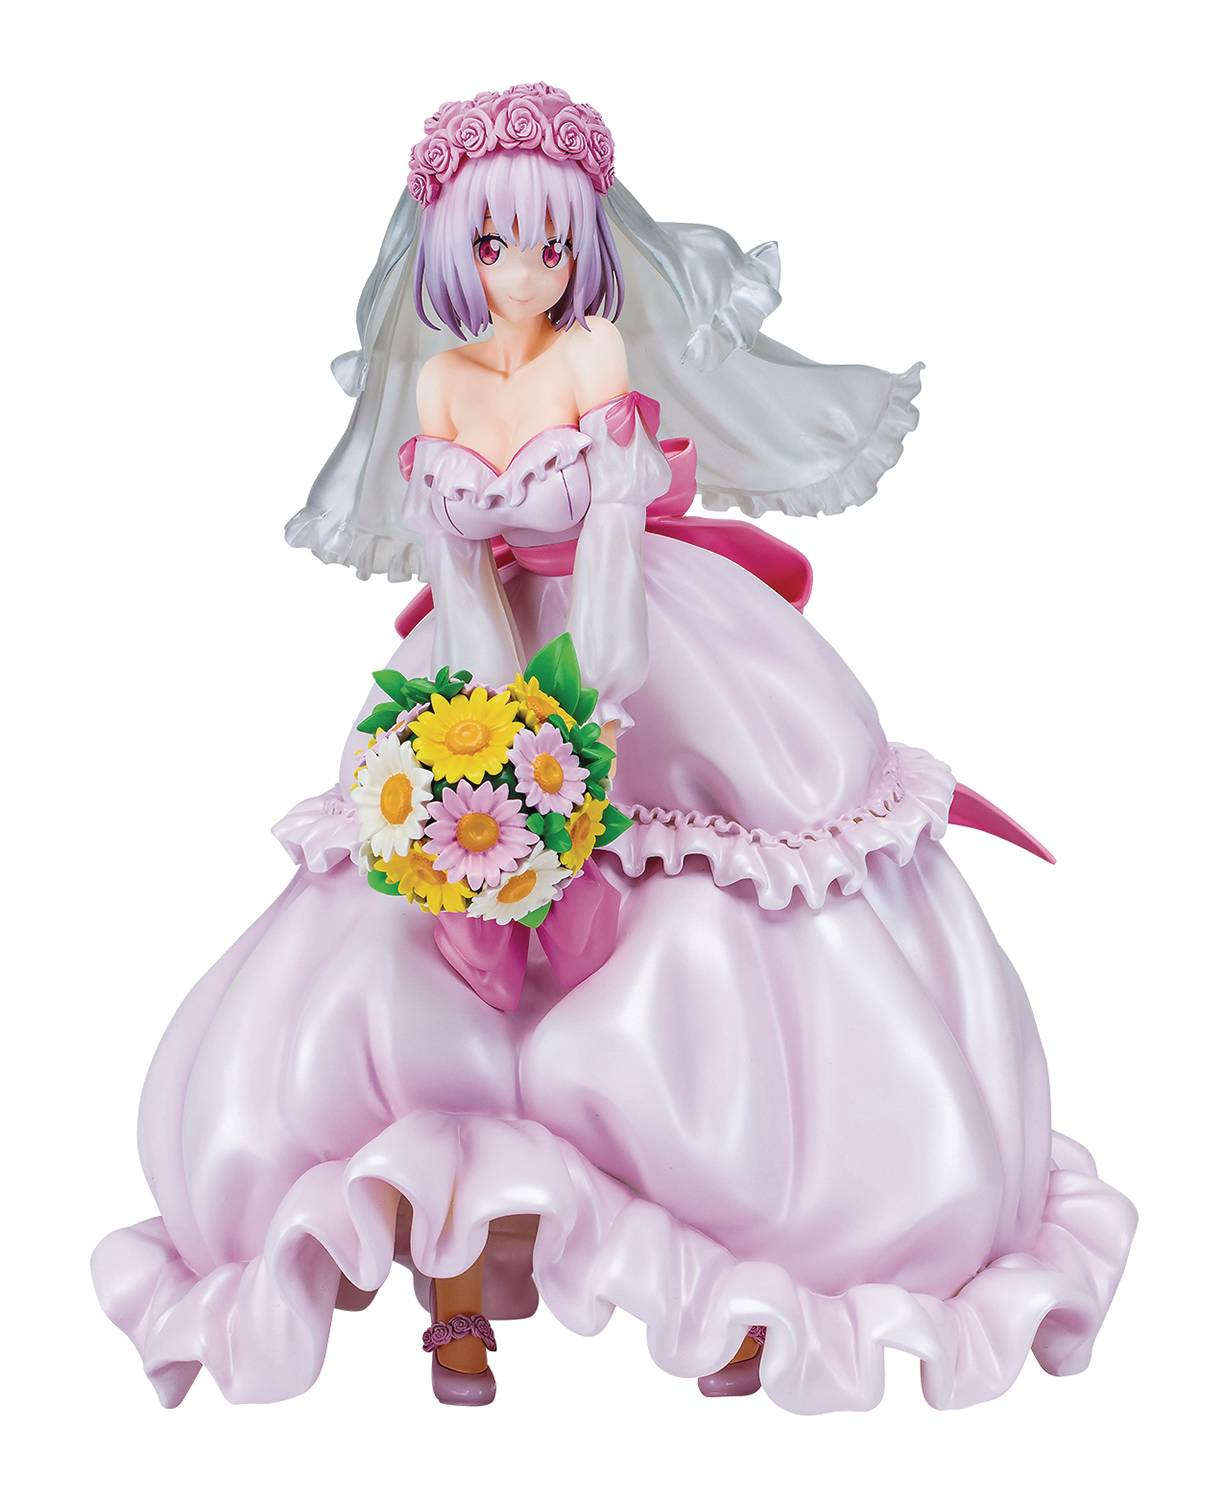 SSSS GRIDMAN AKANE SHINJO 1/8 PMMA FIG WEDDING DRESS VER